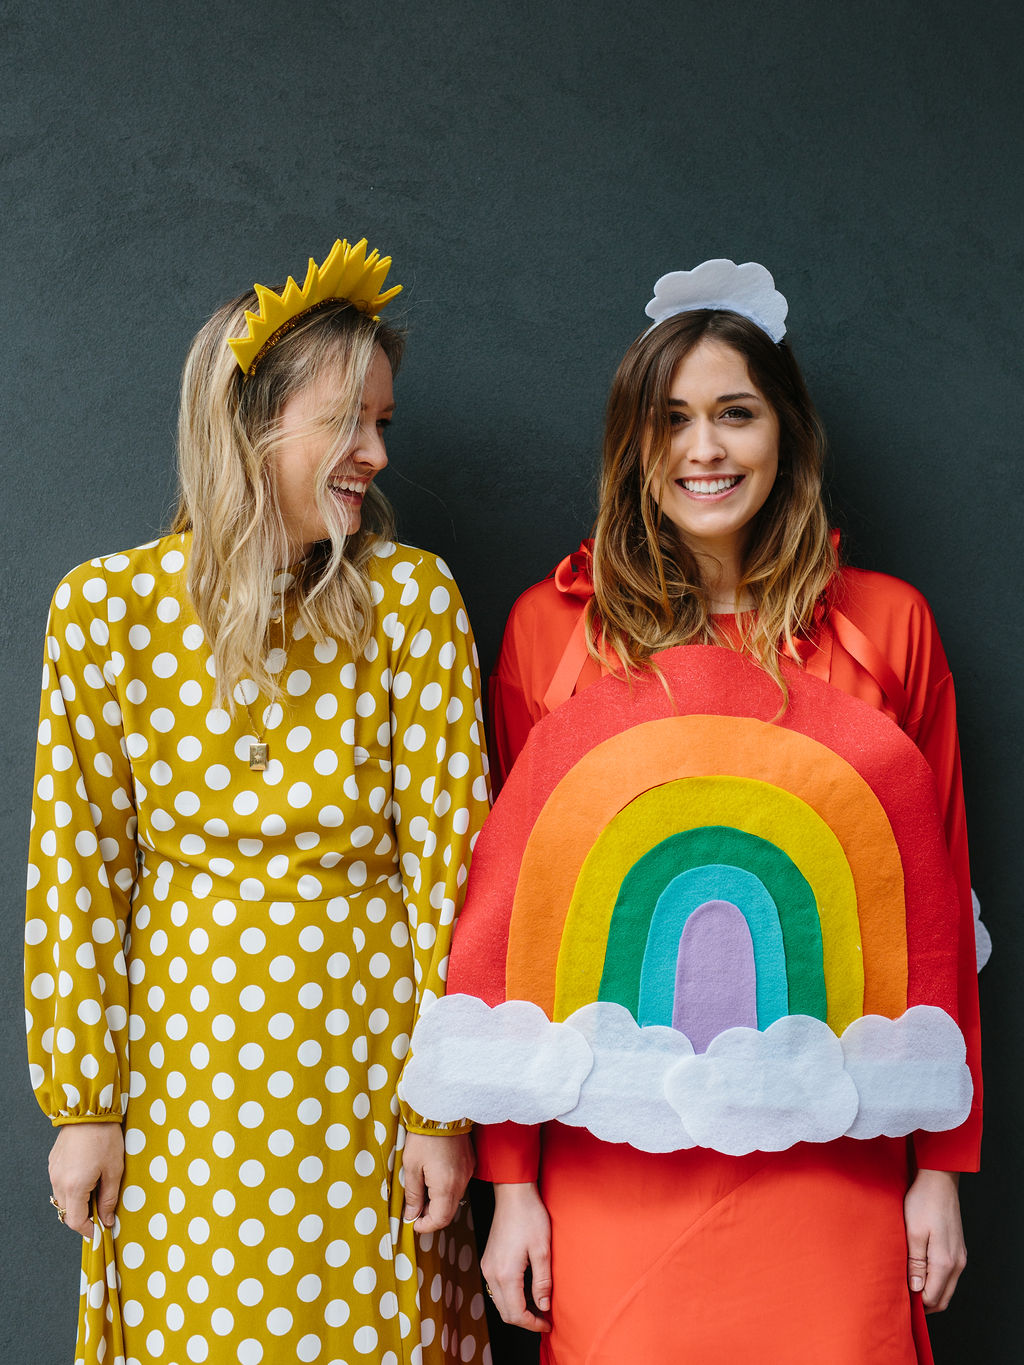 The Easiest DIY Halloween Costume for Friends A Rainbow and